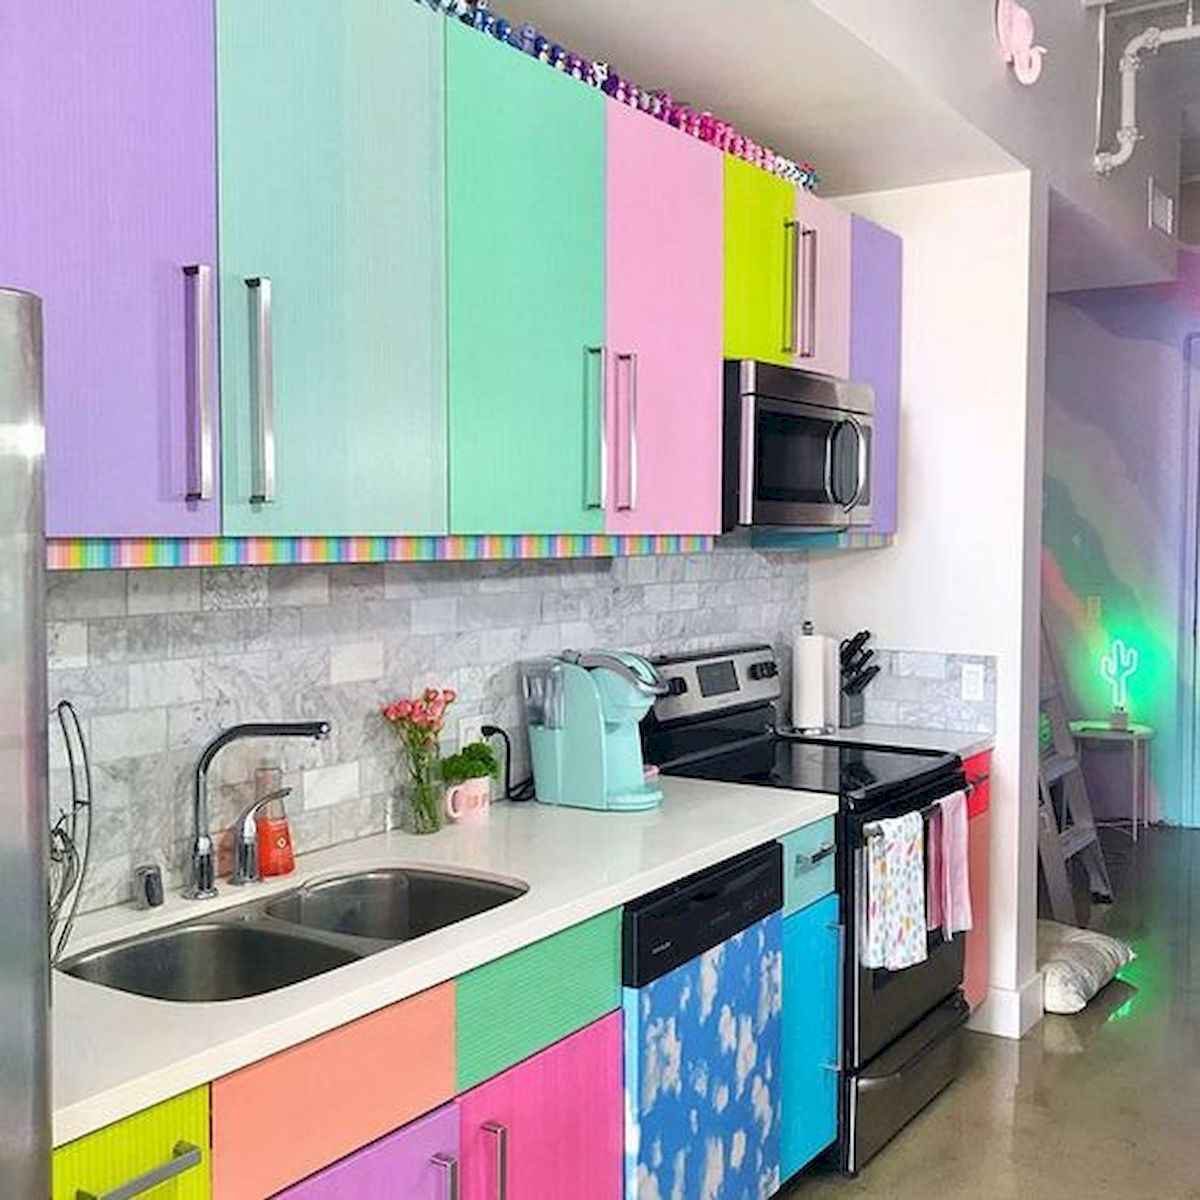 80+ Fantastic Colorful Kitchen Decor Ideas And Remodel for Summer Project (69)